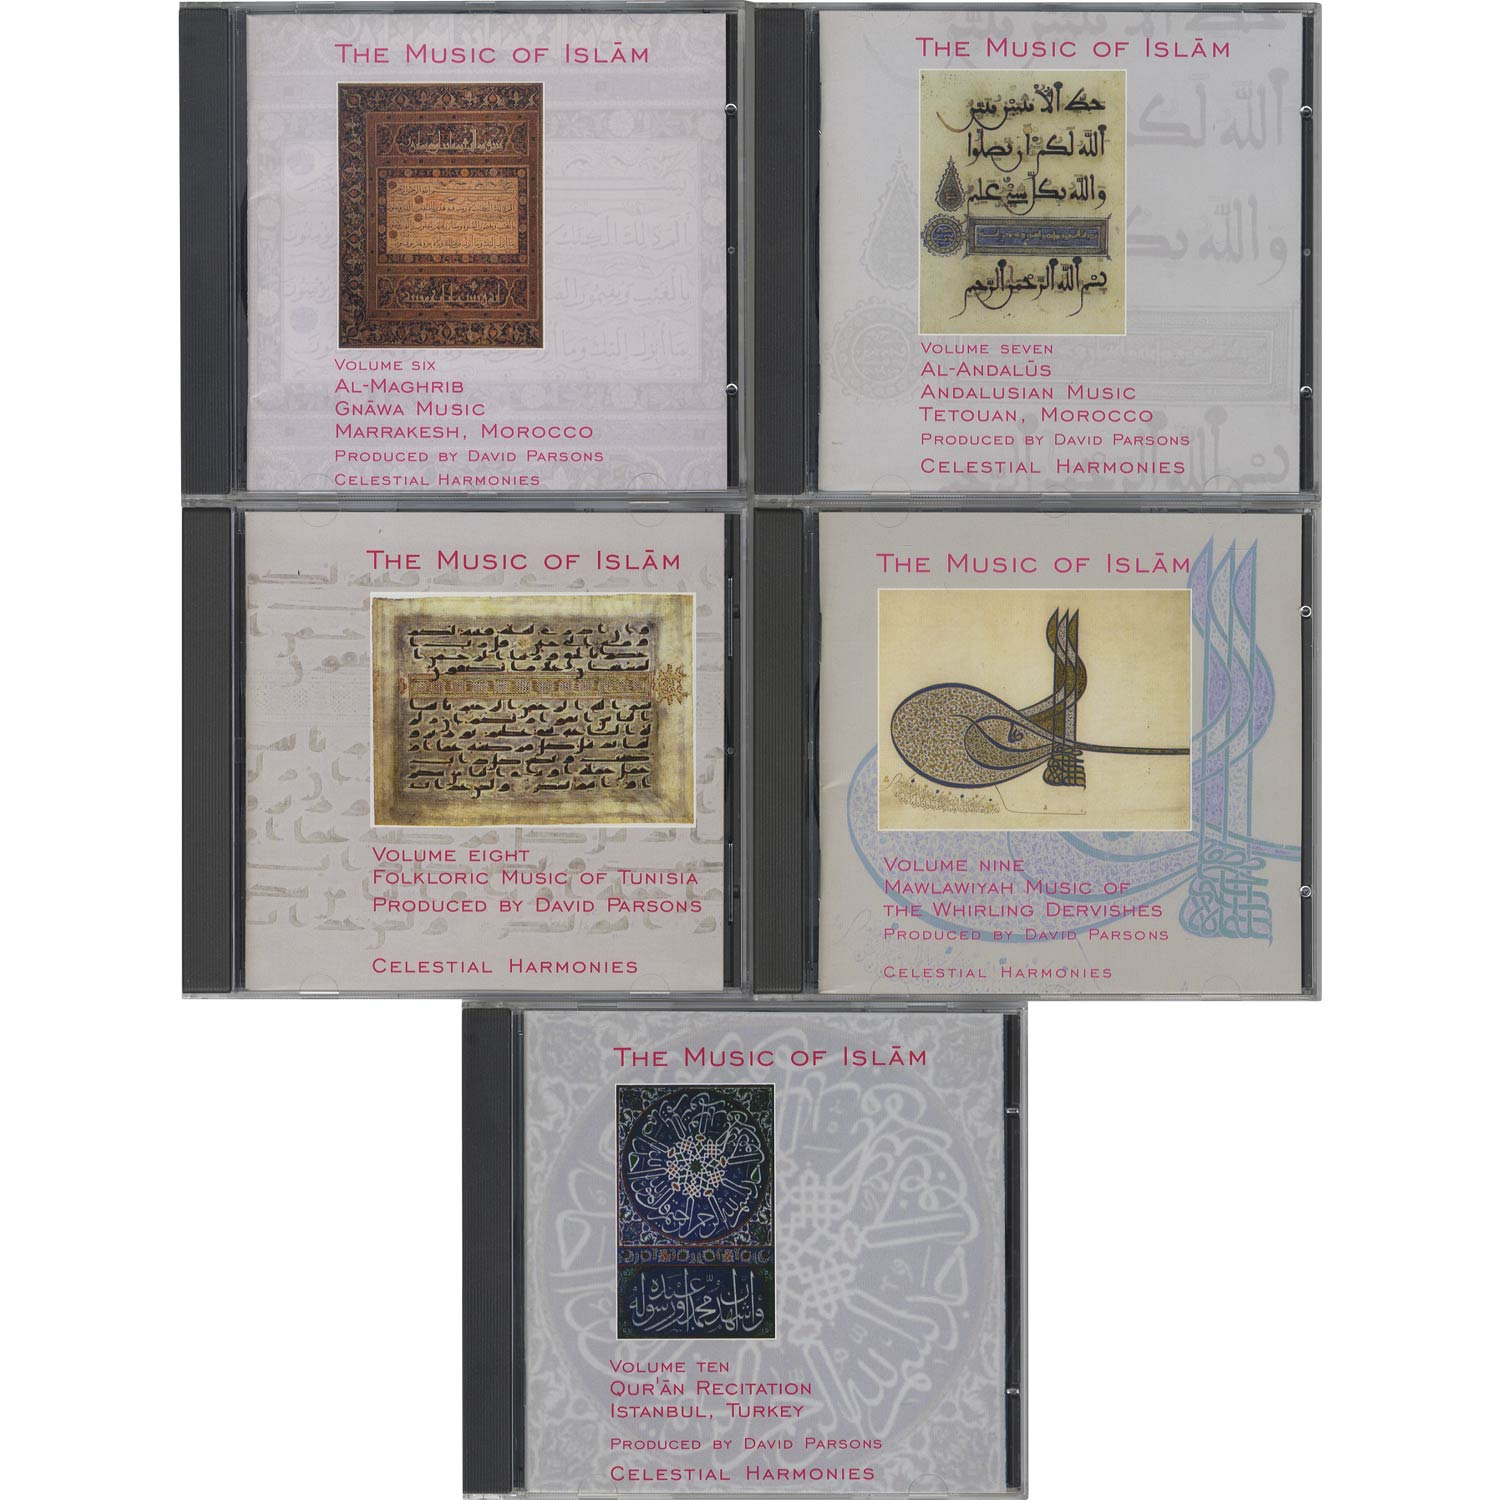 The Music of Islām Complete Edition[image4]